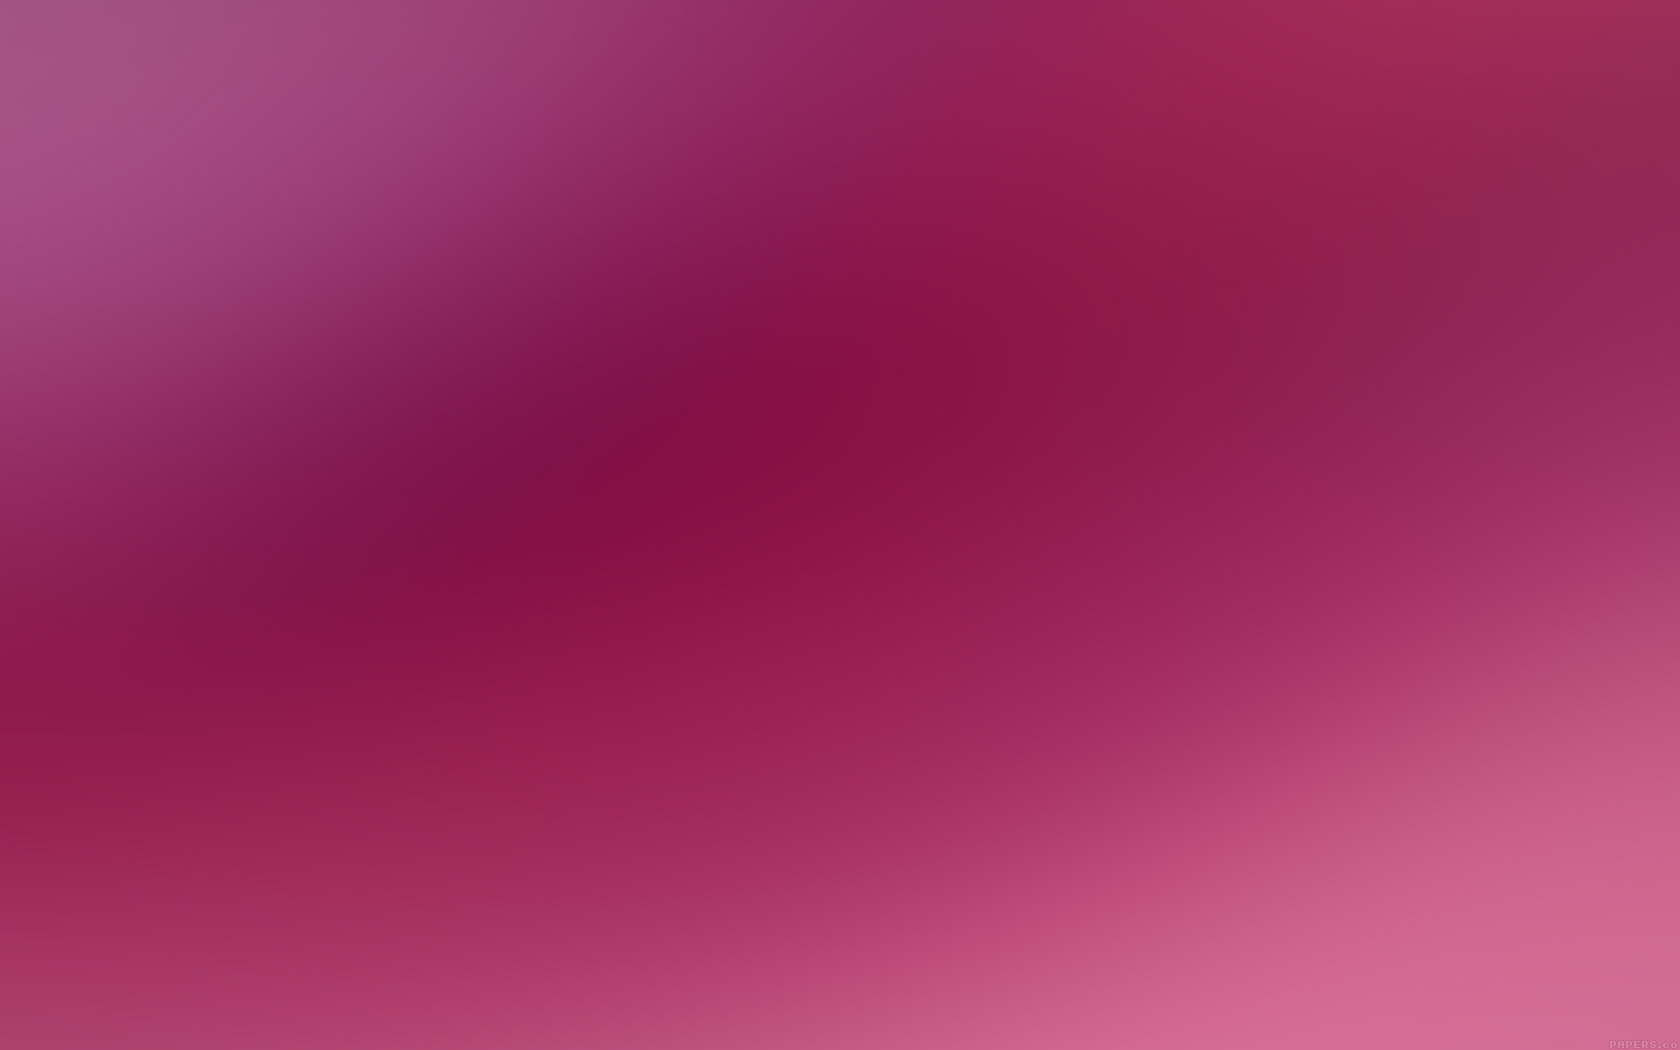 The Fall Film Wallpaper Se95 Light Hot Pink Red Gradation Blur Papers Co